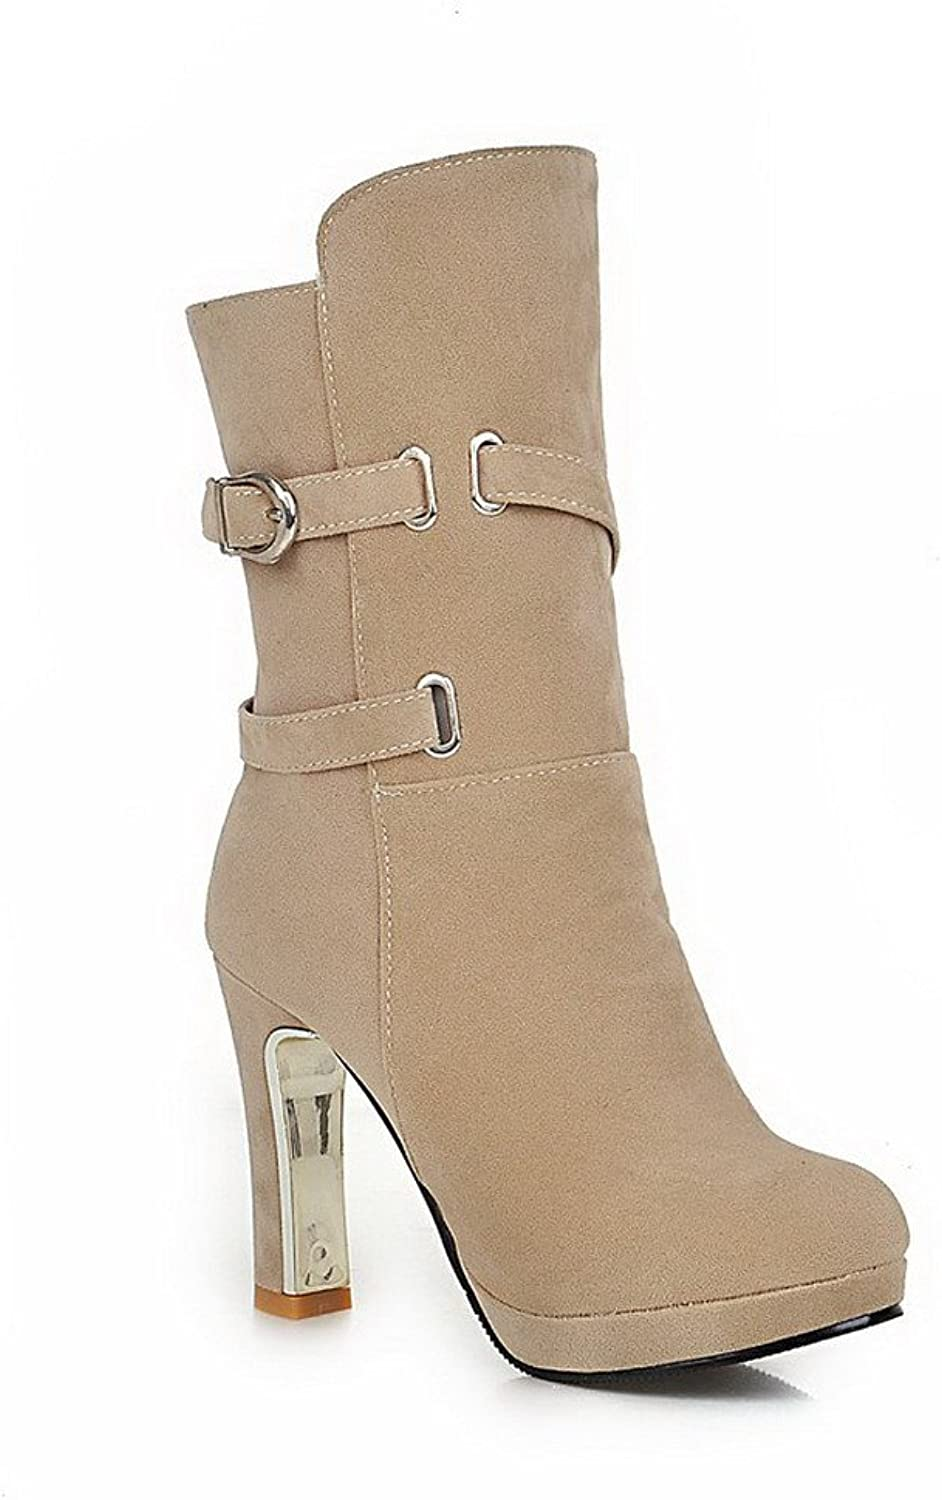 WeenFashion Women's Round Closed Toe Mid Top High Heels Solid Imitated Suede Boots